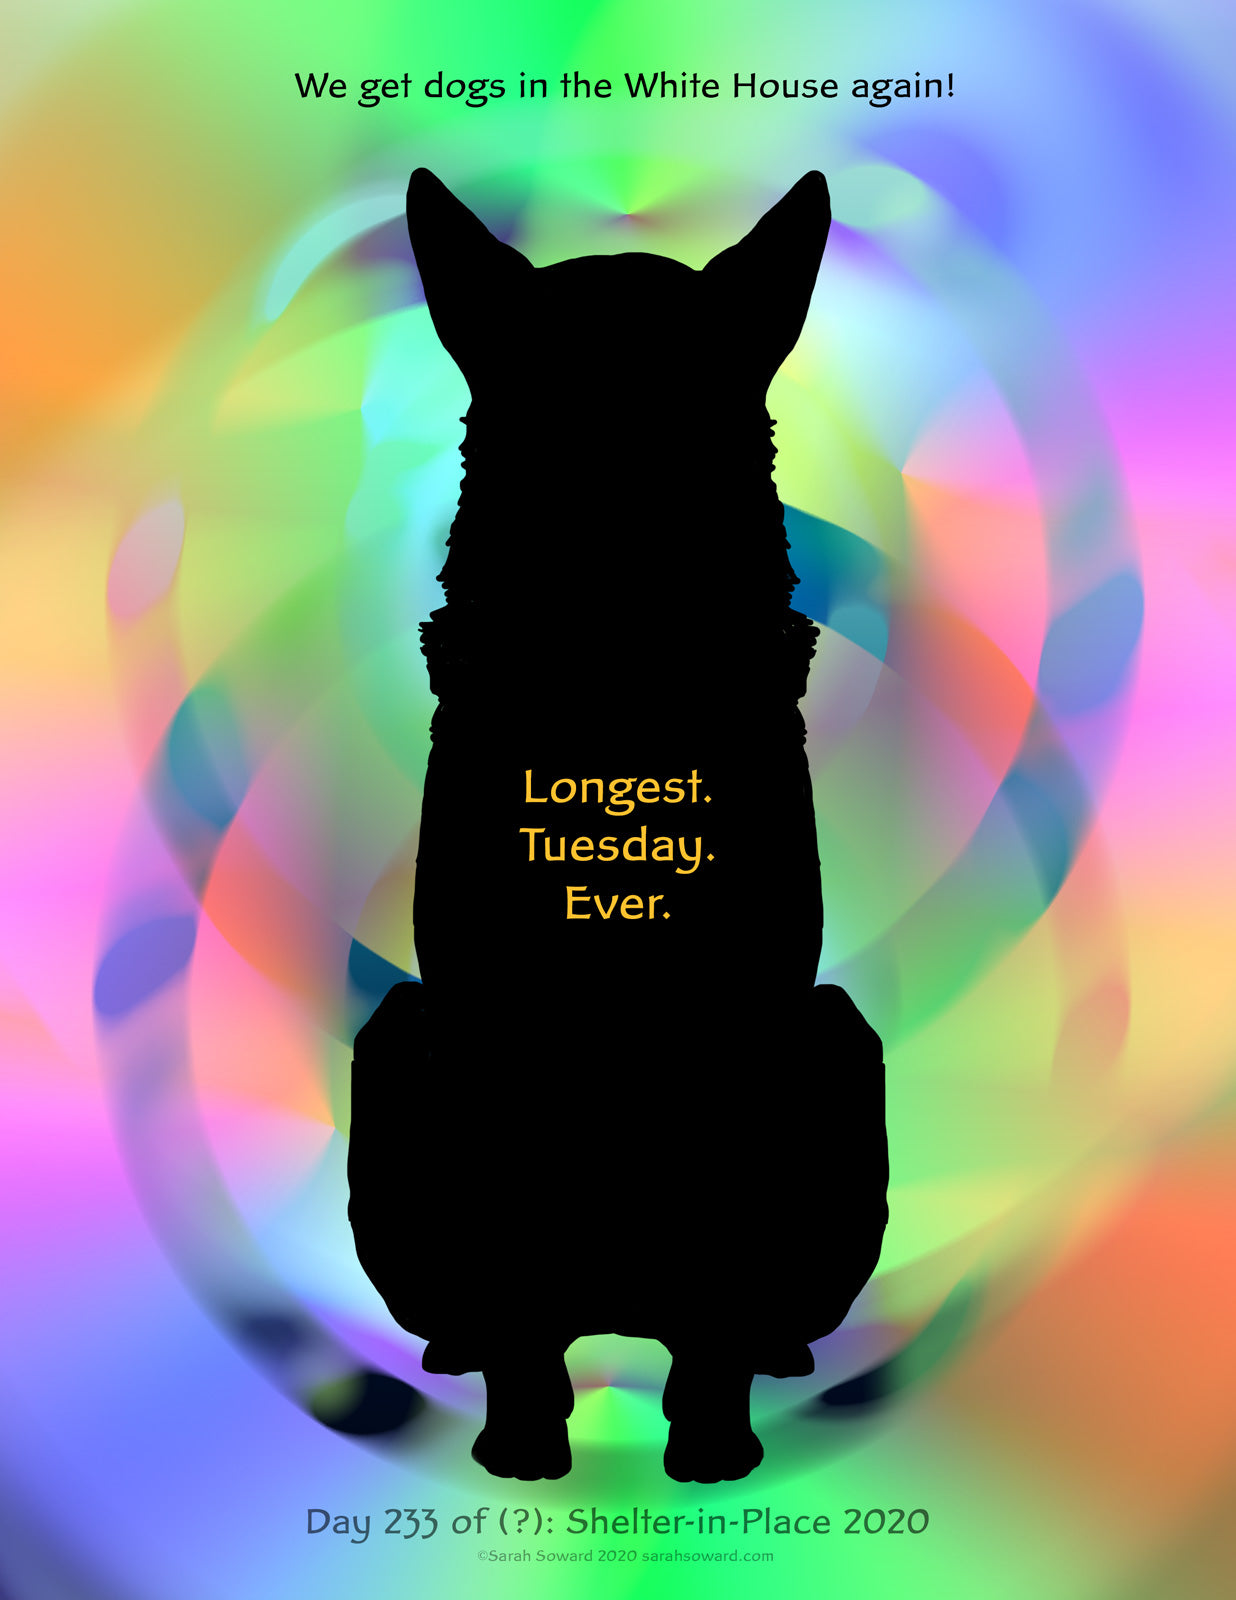 A multi-color background swirls and glows behind the silhouette of a dog. It could be any dog. It gets to be the People's Dog--or dogs. The text on the image reads:   We get dogs in the White House again! Longest. Tuesday. Ever. Day 233 of (?): Shelter-in-Place 2020